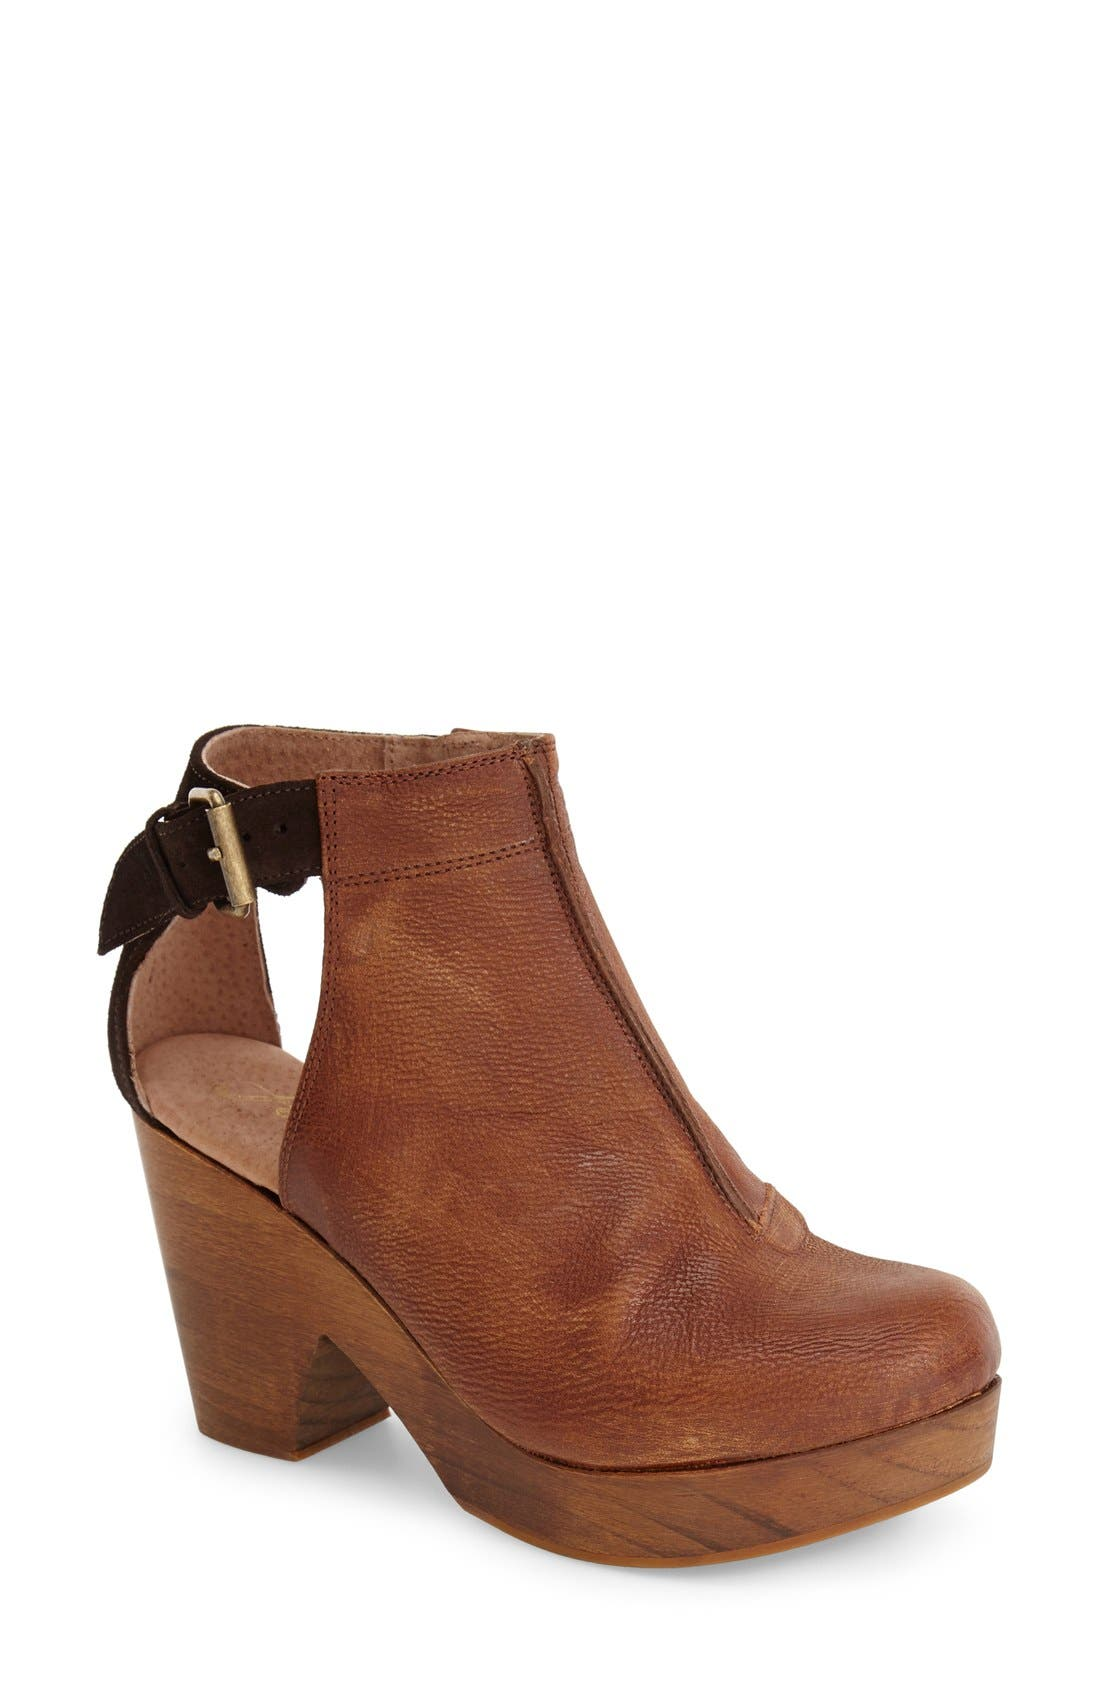 Main Image - Free People 'Amber Orchard' Cutout Bootie (Women)